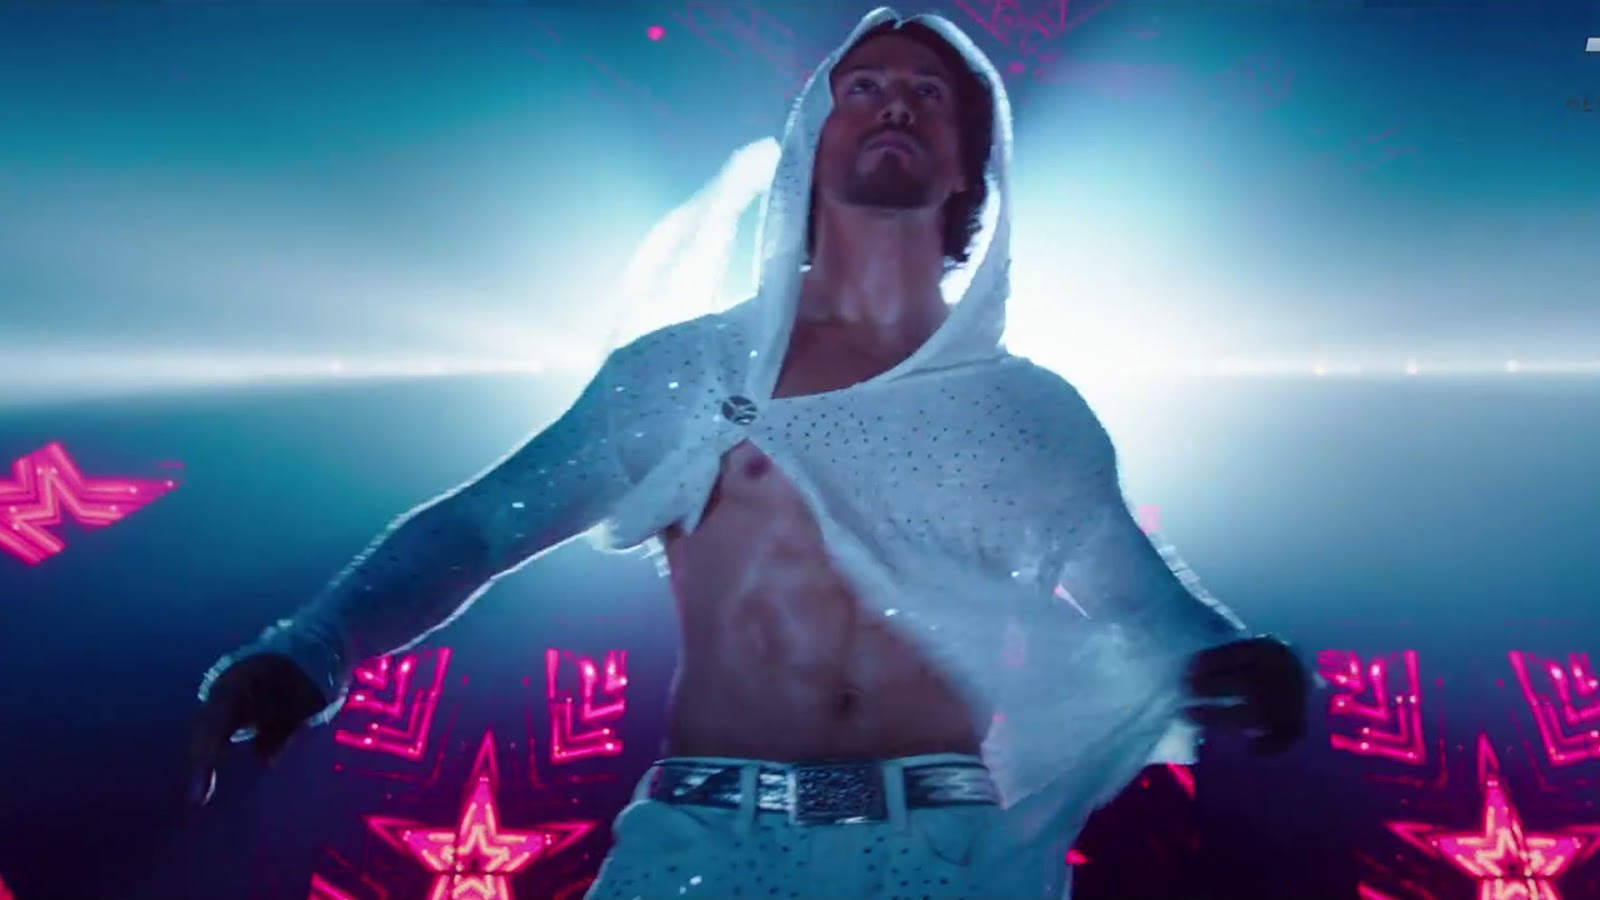 Tiger shroff wallpapers hd download free 1080p for Stylish wallpaper